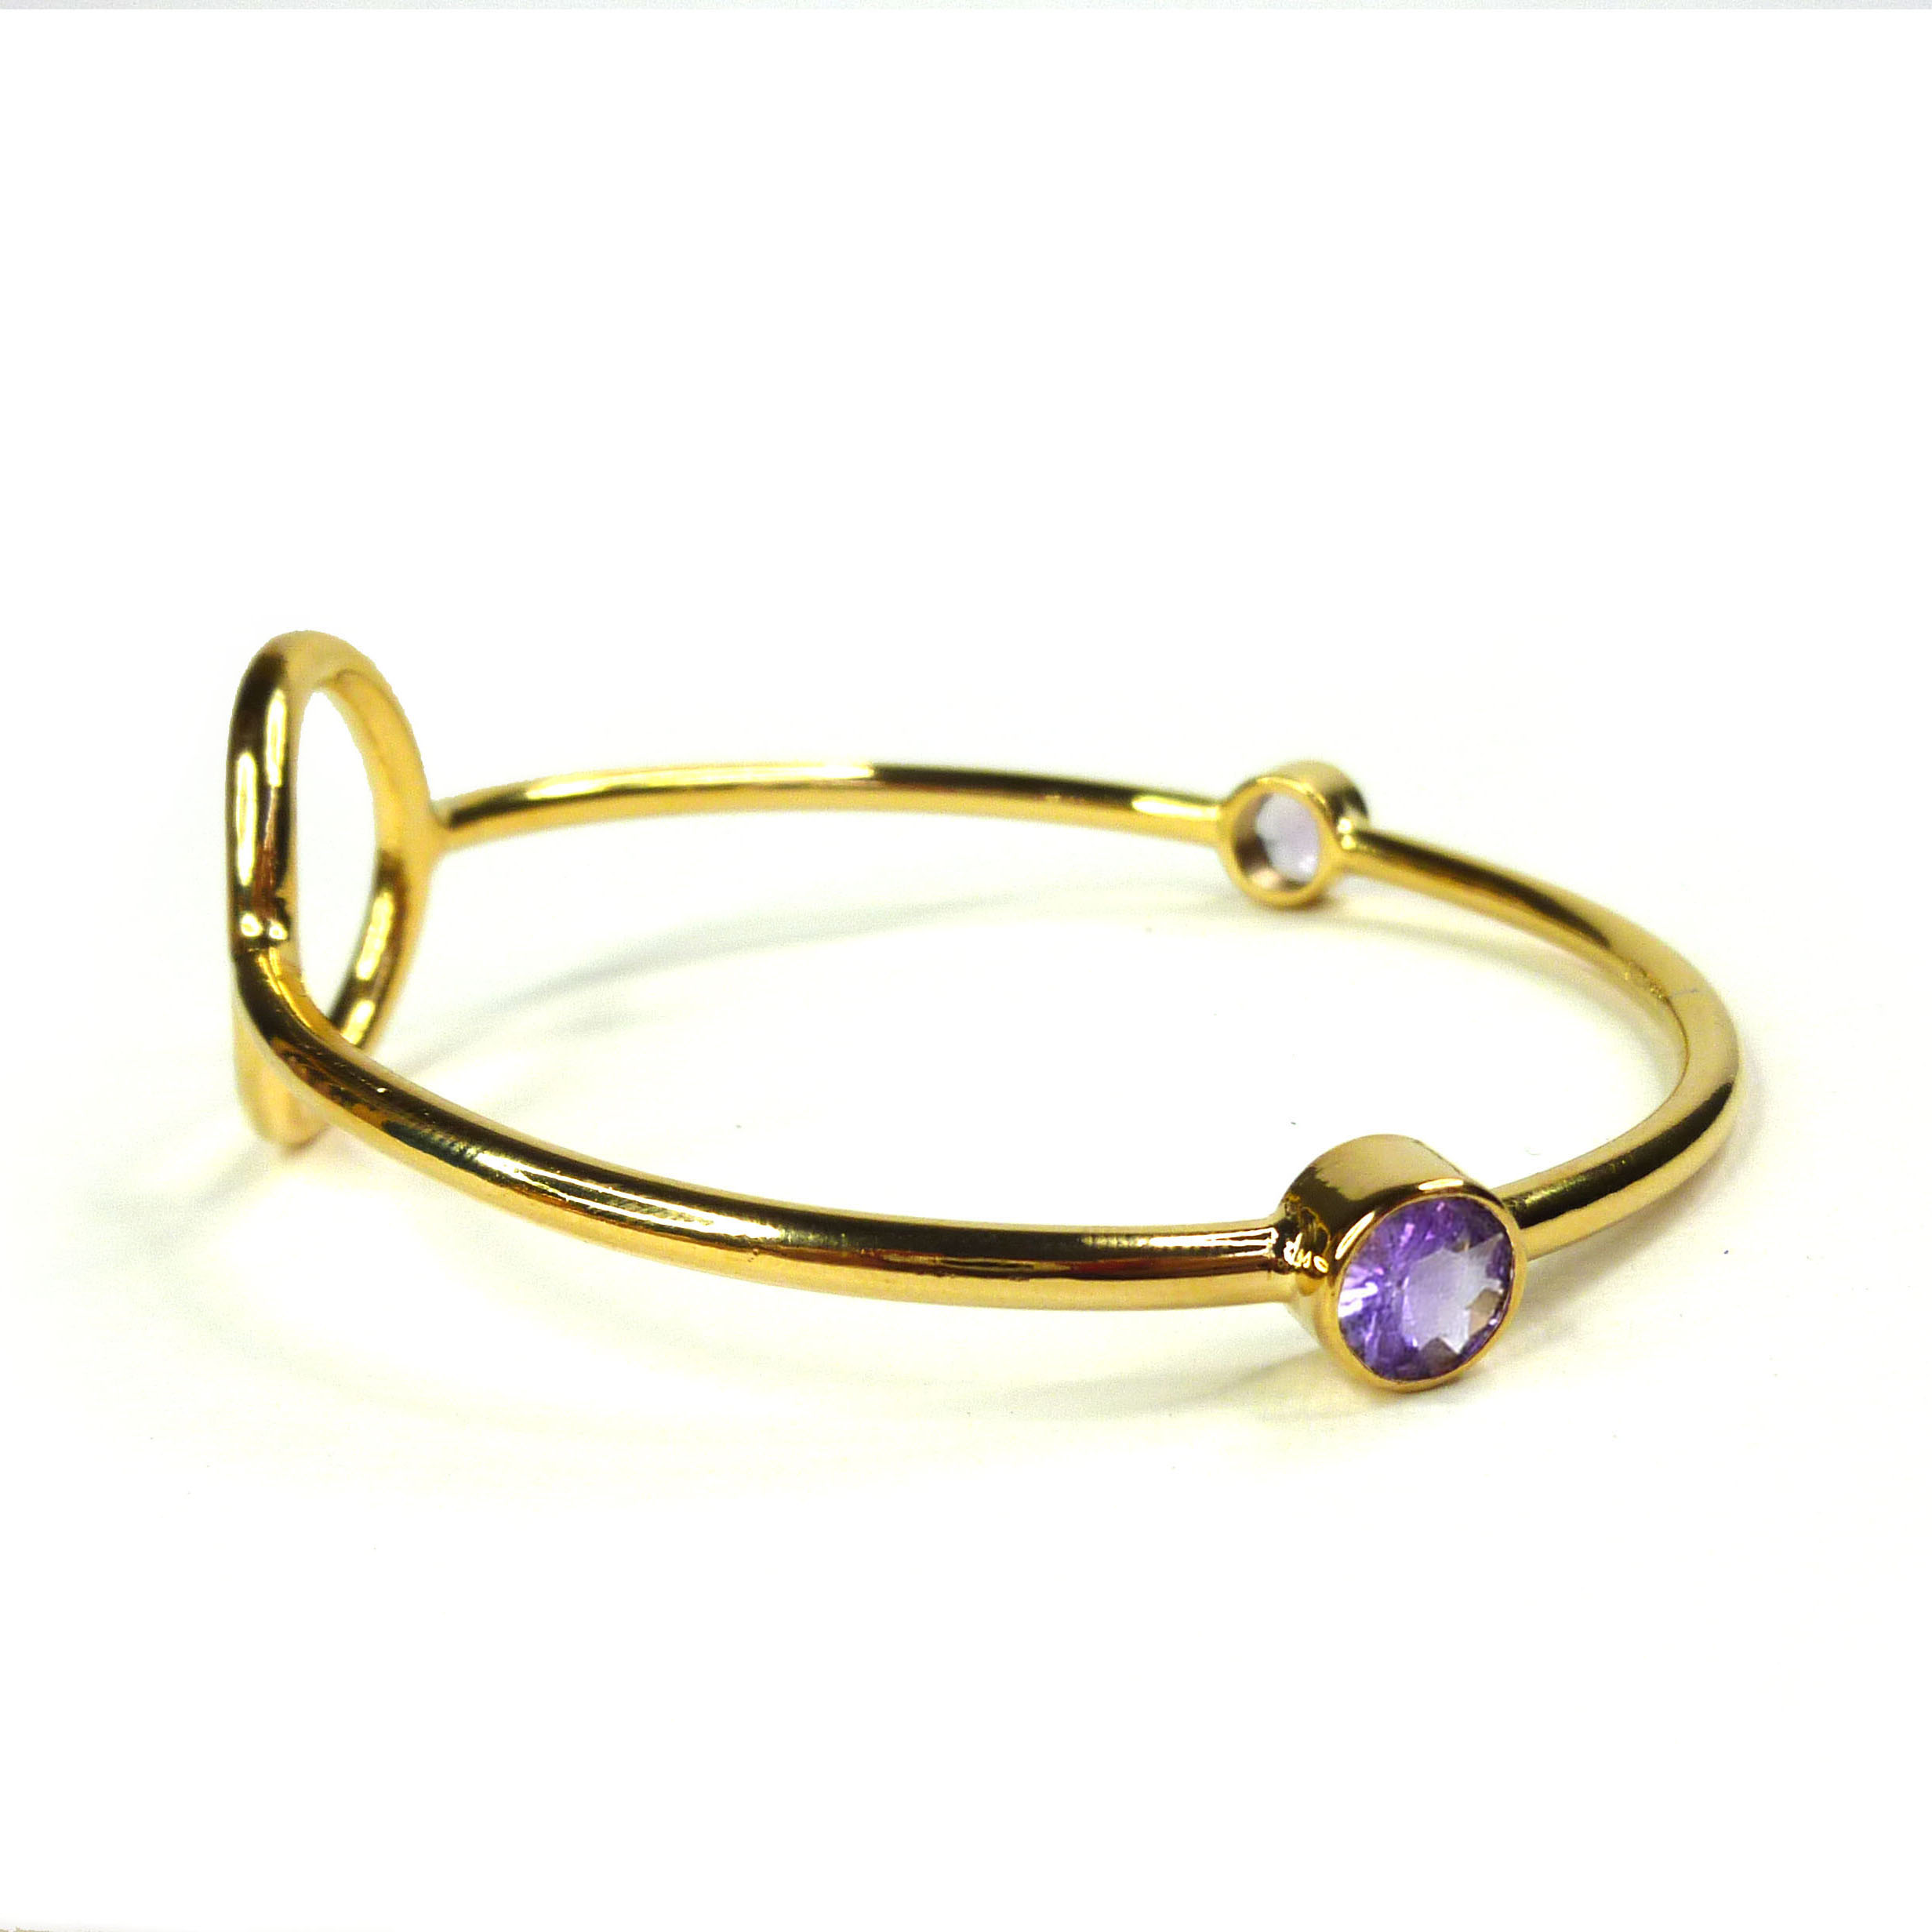 yellow bangle link bangles jewelers ladies previous heart amethyst next bright bracelet gold